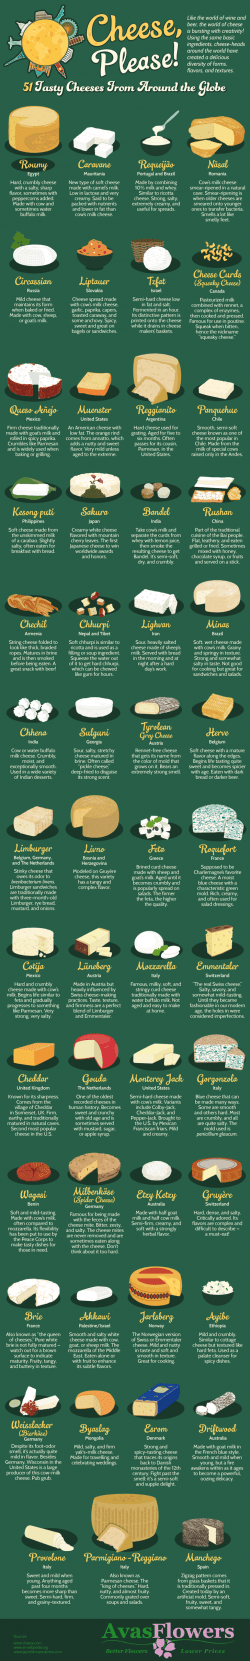 51 Types of Cheese – Imgur